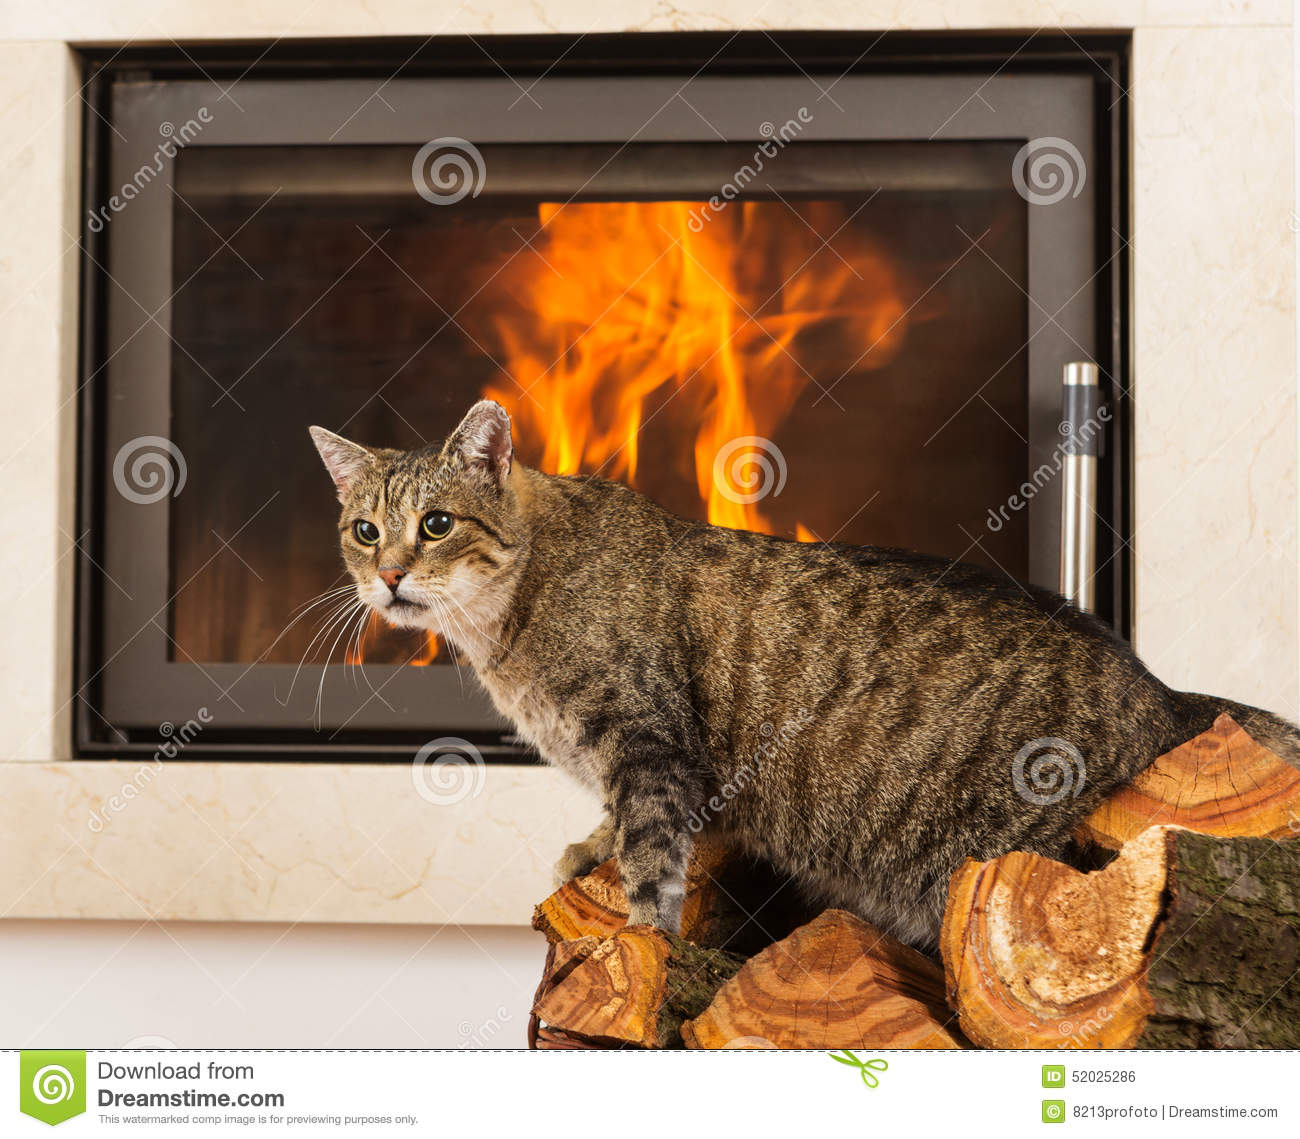 Cat In Front Of Fireplace Stock Photo - Image: 52025286